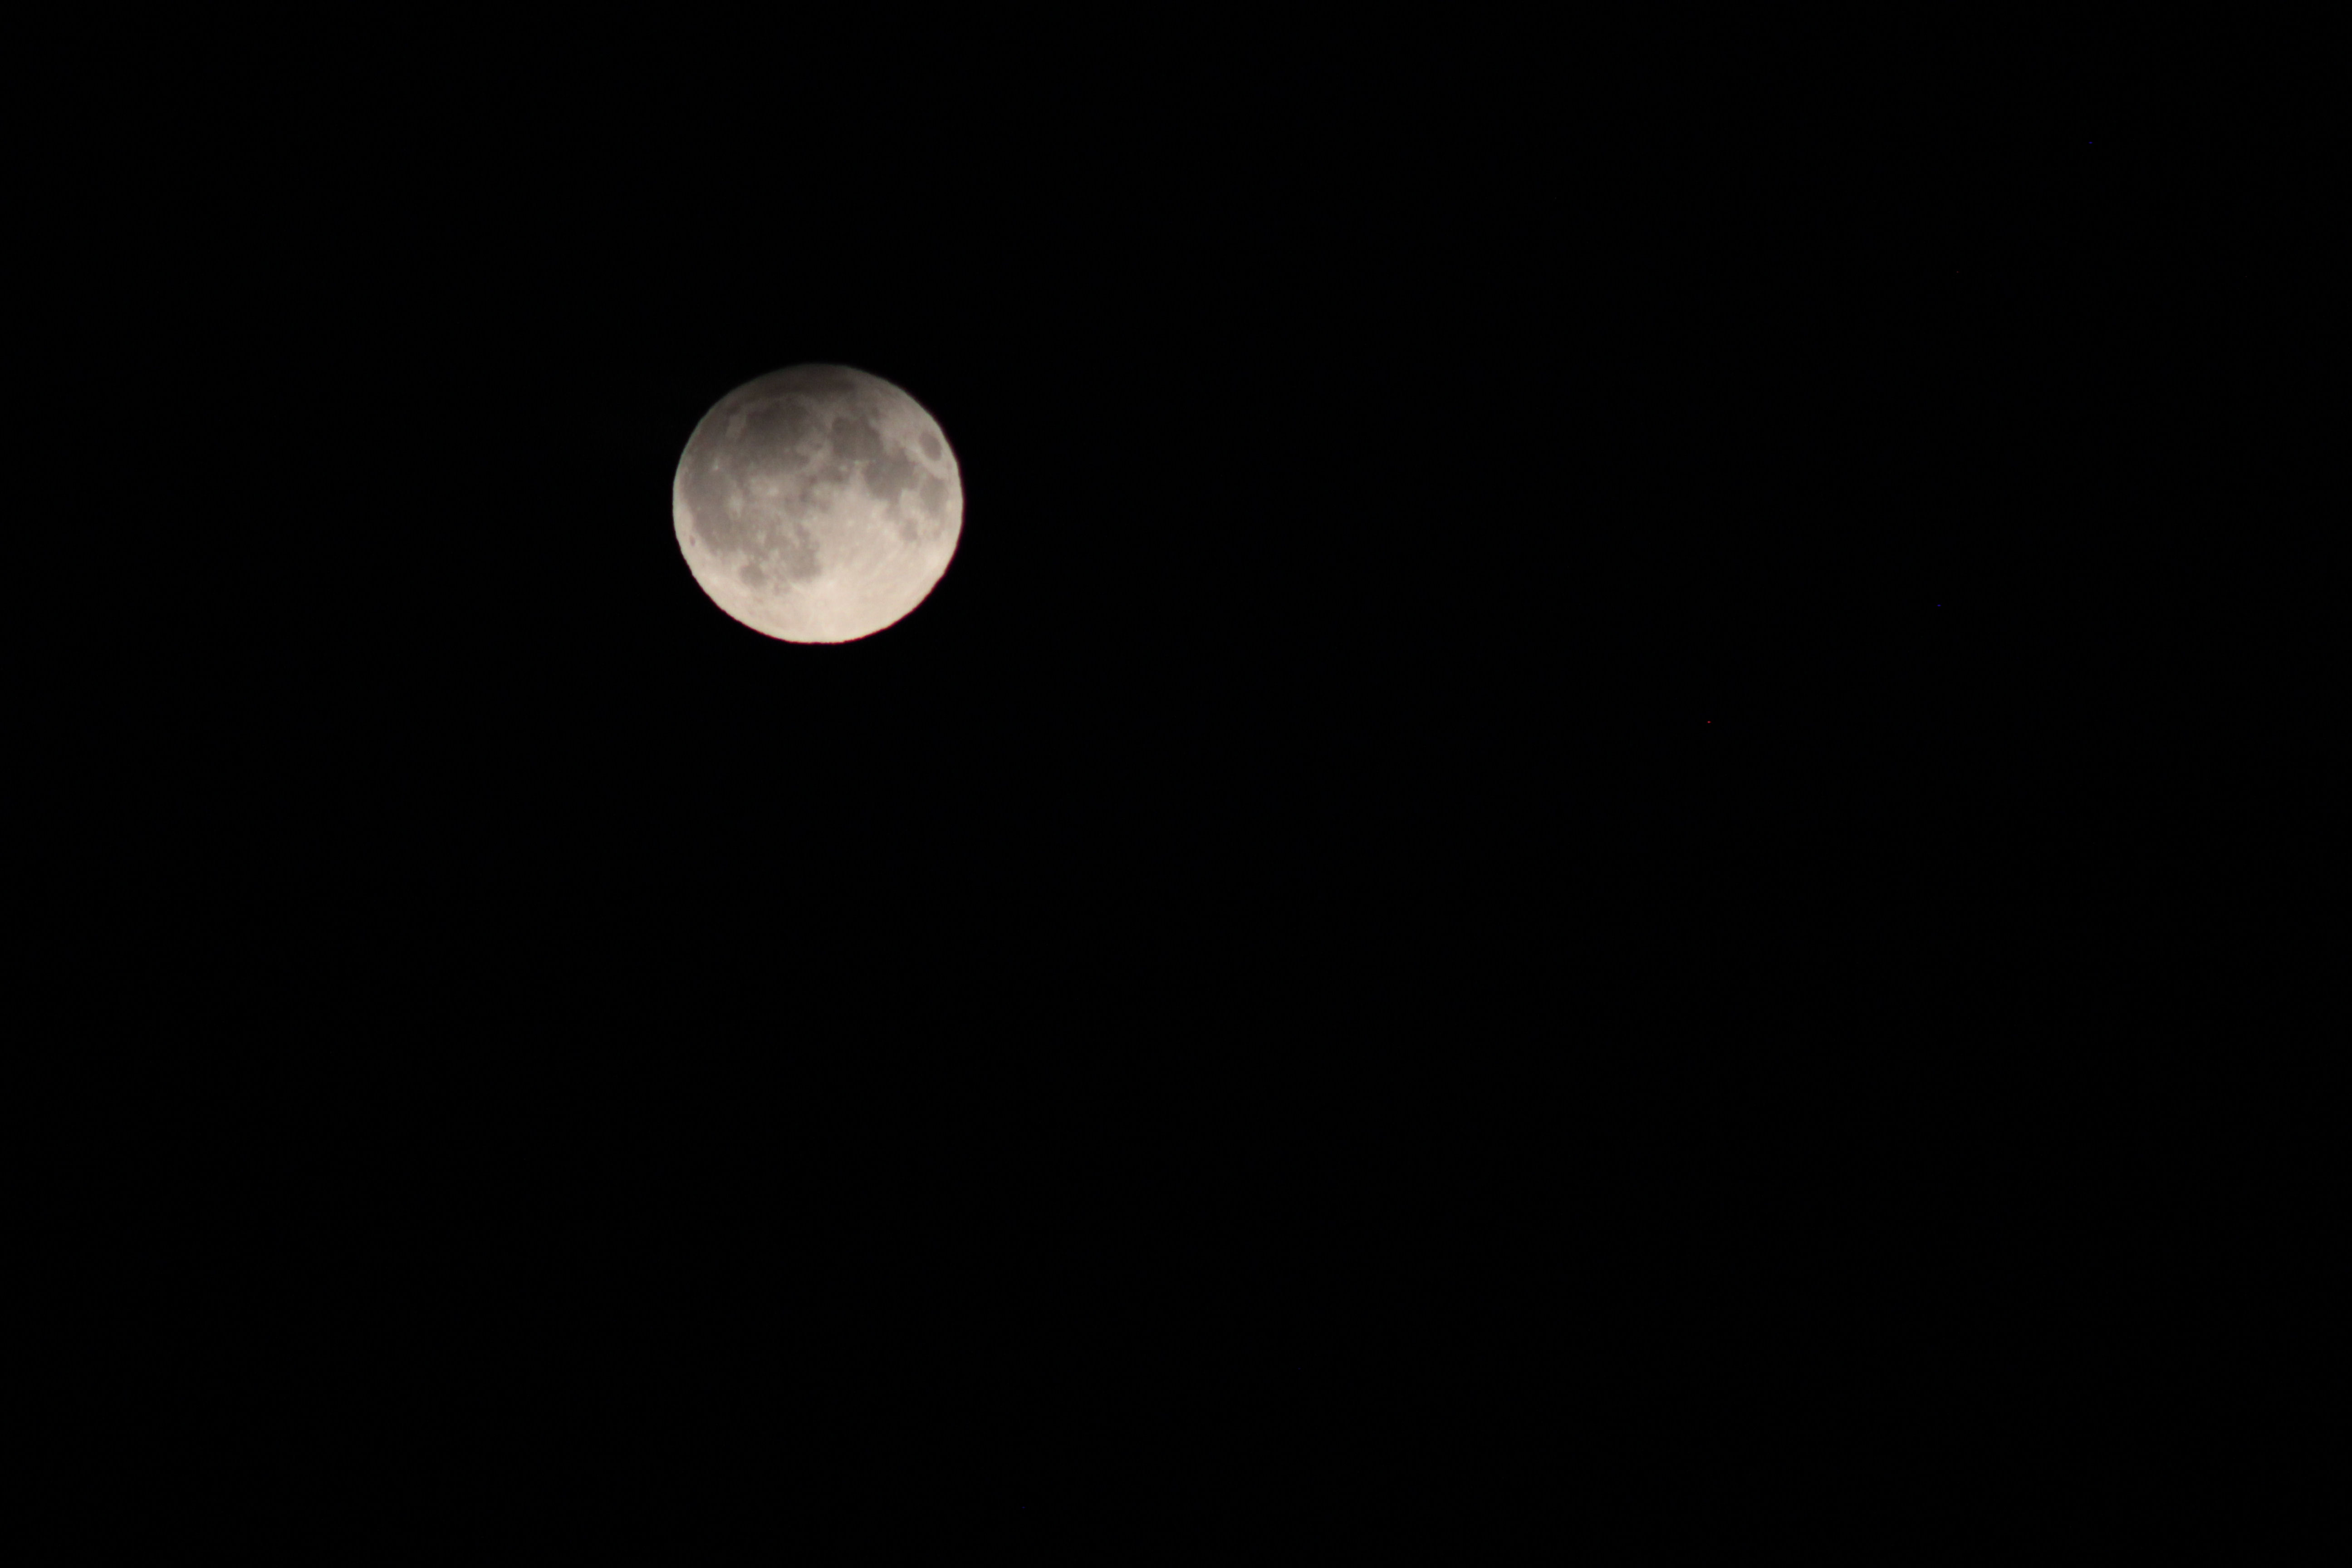 Penumbral Lunar Eclipse by Pam Foster. 16.09.16 20.11.  Canon EoS 600D f/5.6 : ISO-800 1/640 second